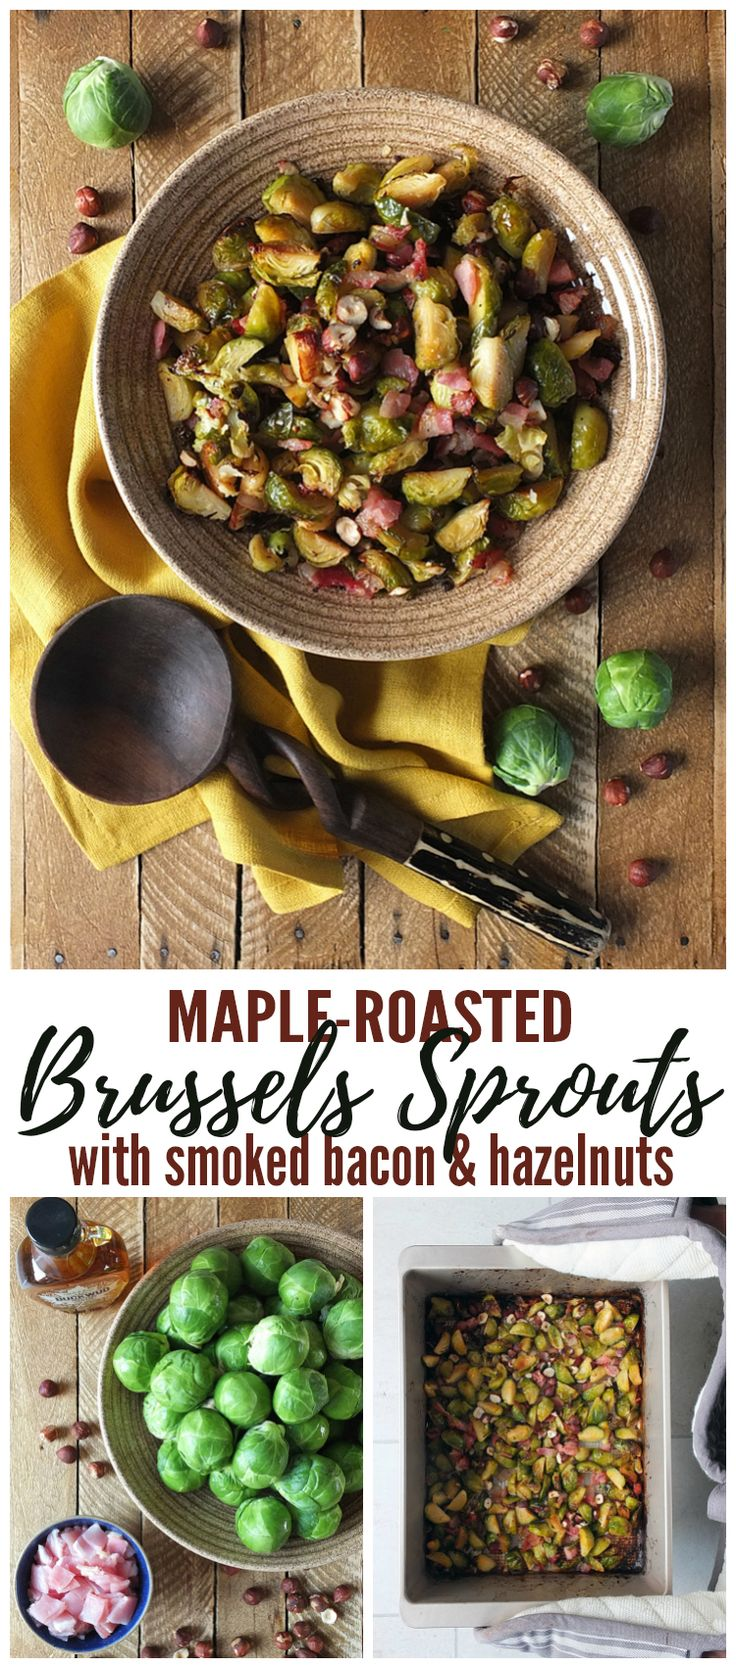 In collaboration with OXO UK. #ad #thanksgiving #thanksgivingrecipes #brusselssprouts